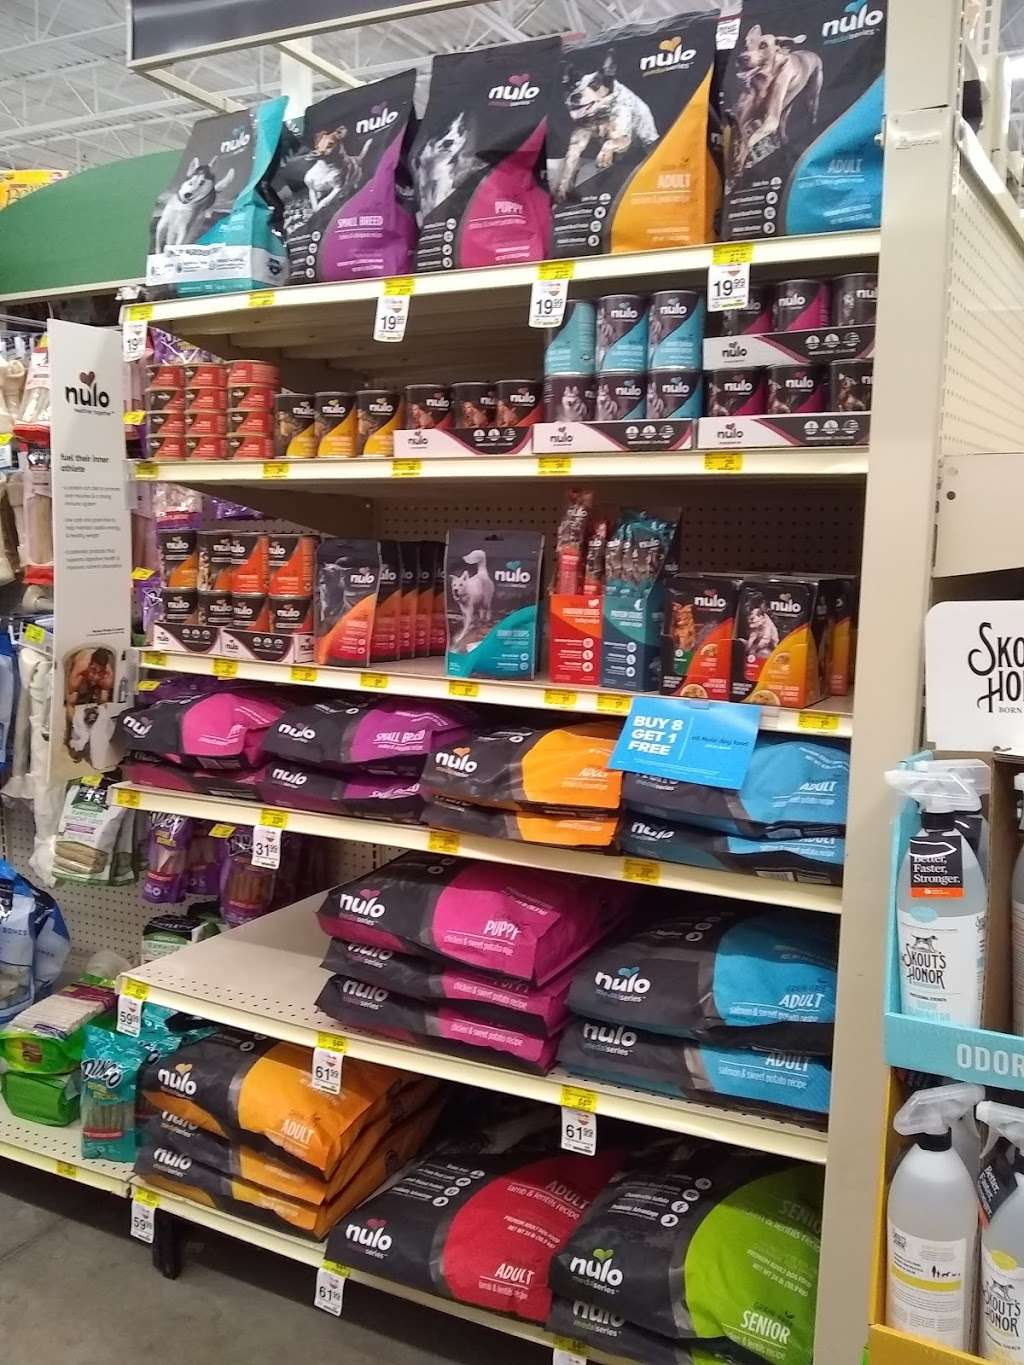 PetSmart - veterinary care  | Photo 6 of 10 | Address: 5 Mystic View Rd, Everett, MA 02149, USA | Phone: (617) 387-2568